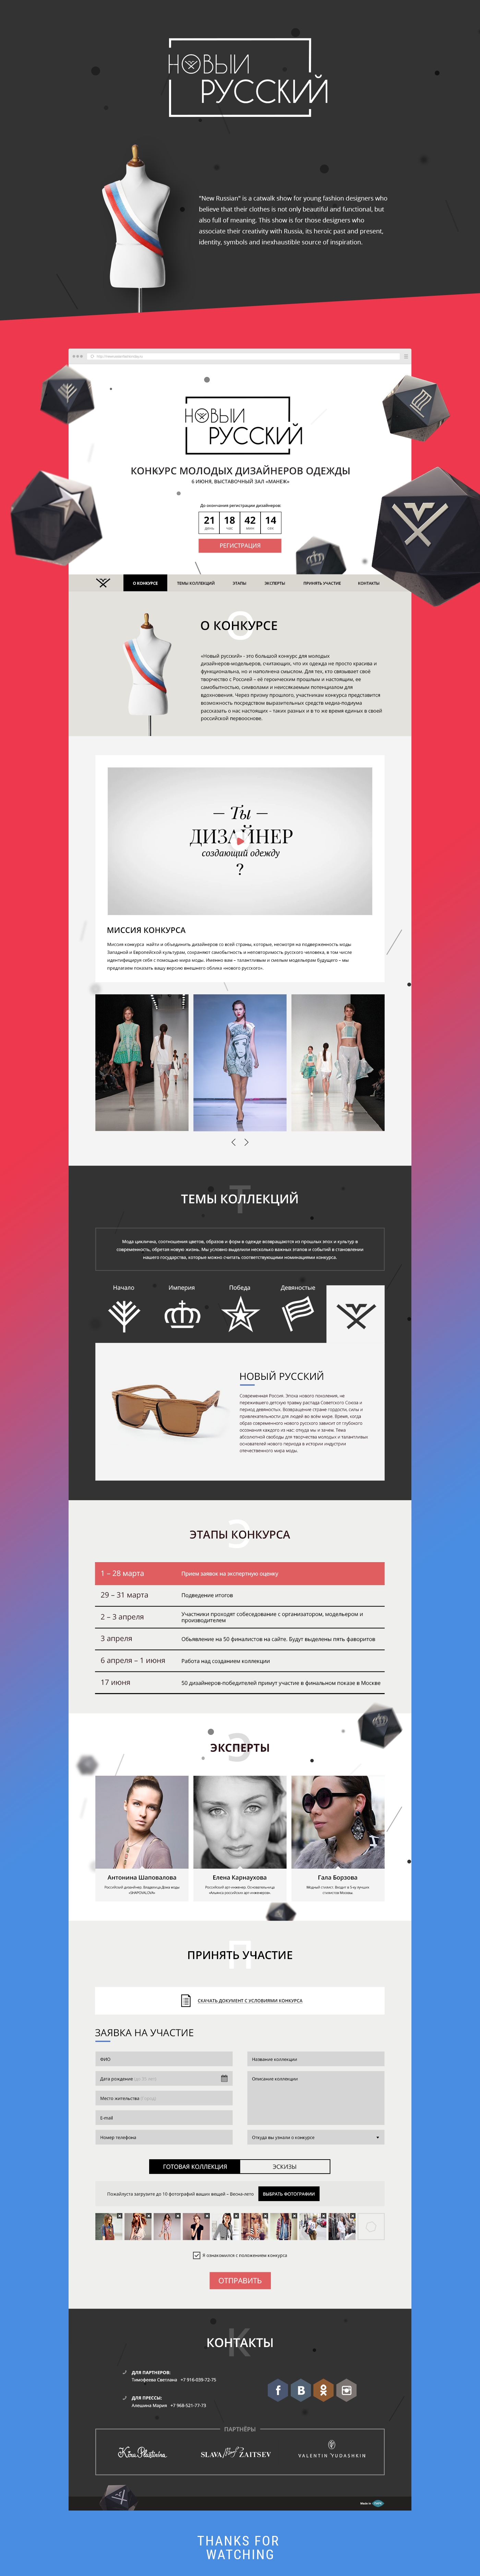 fashion site catwalk mannequin Animated Logo Russia Show Competition